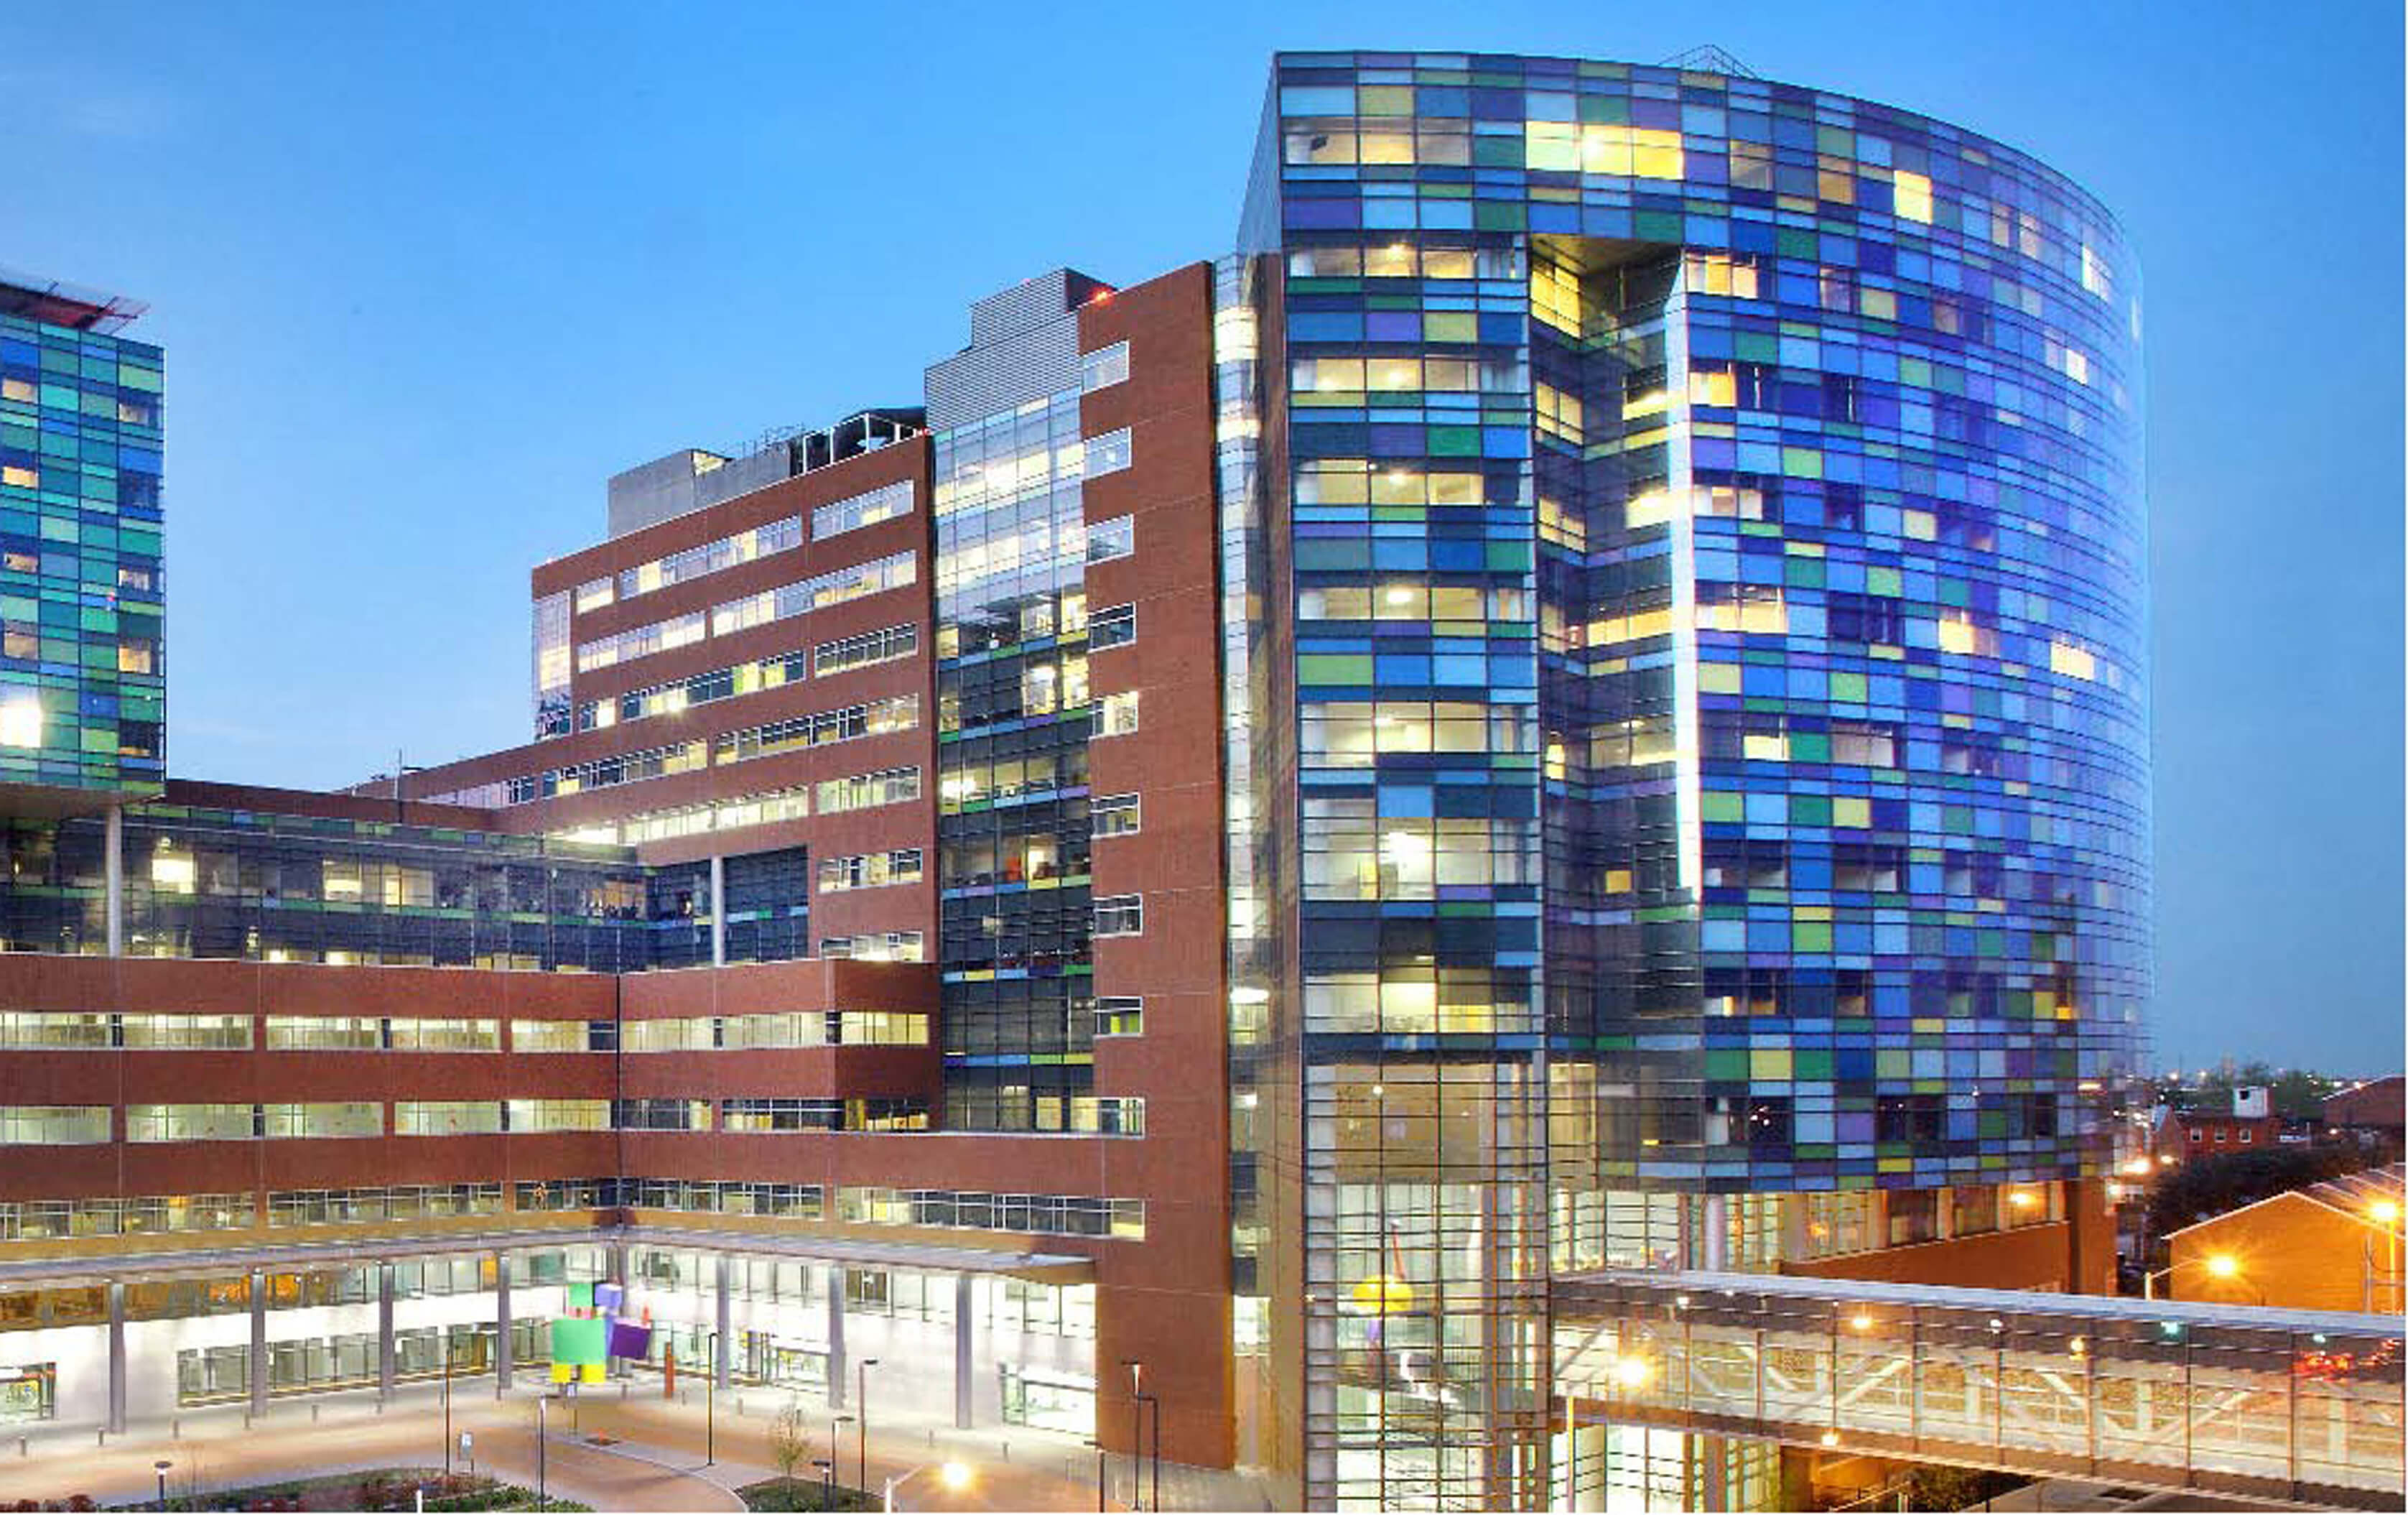 The Johns Hopkins Children's Center